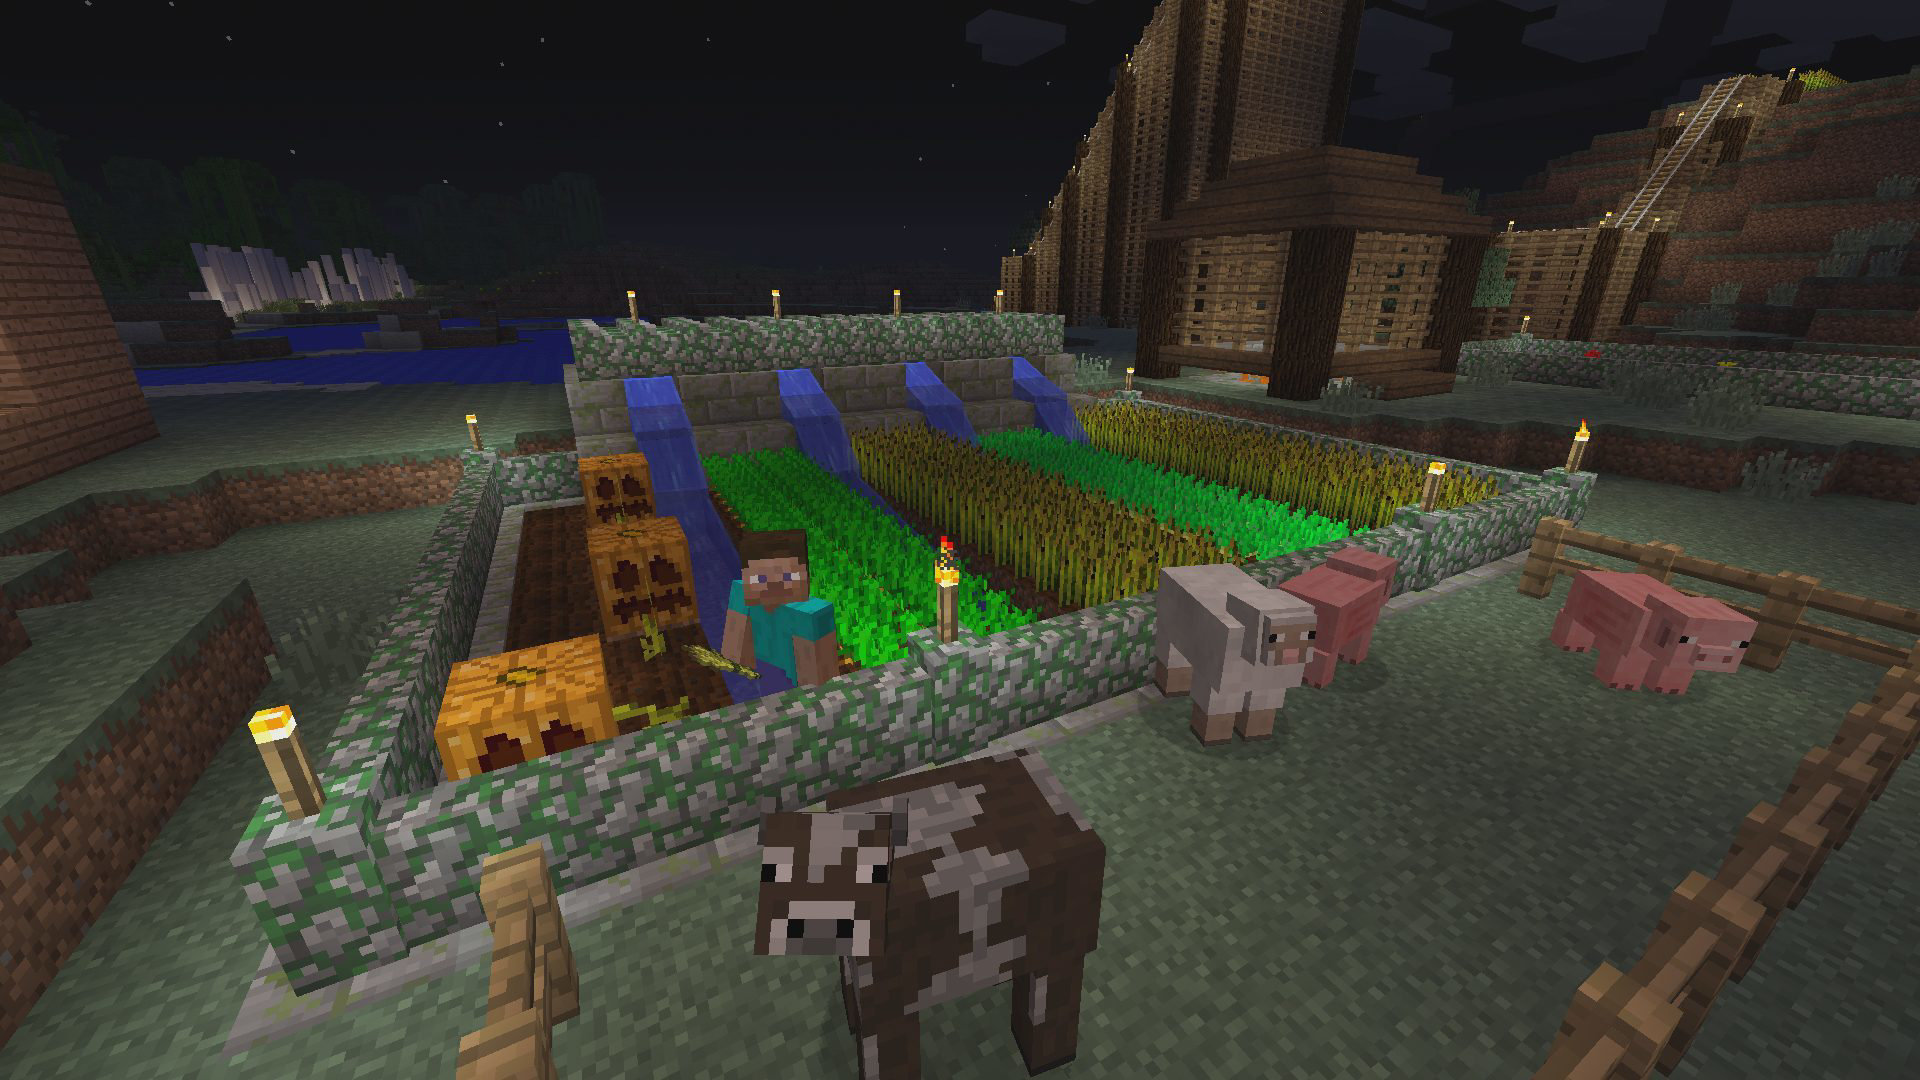 Minecraft and Mojang's sale to Microsoft began with a frustrated tweet from Notch